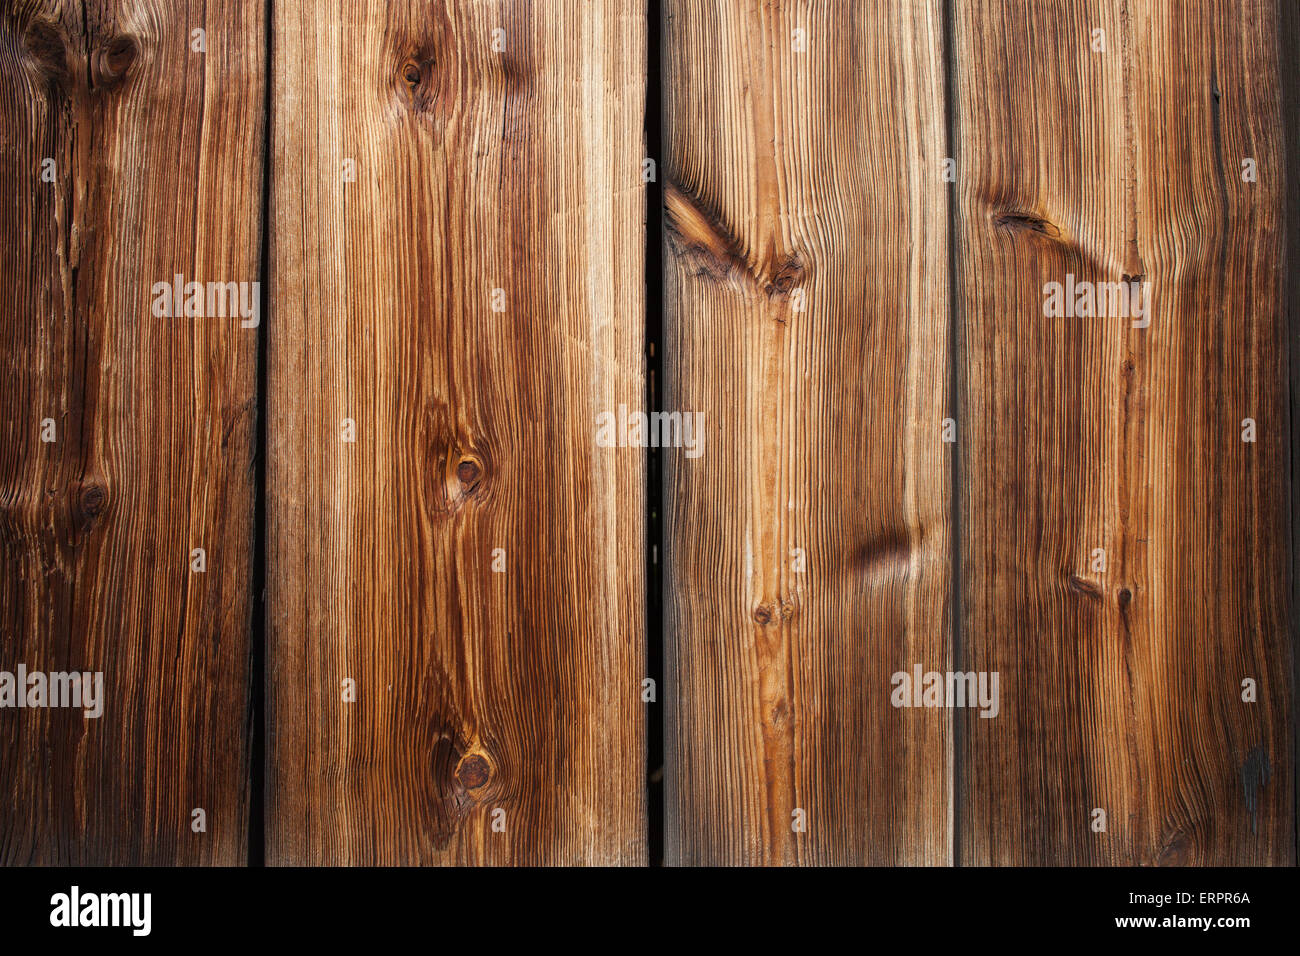 Vintage wood planks with knots background decor element with beautiful texture - Stock Image